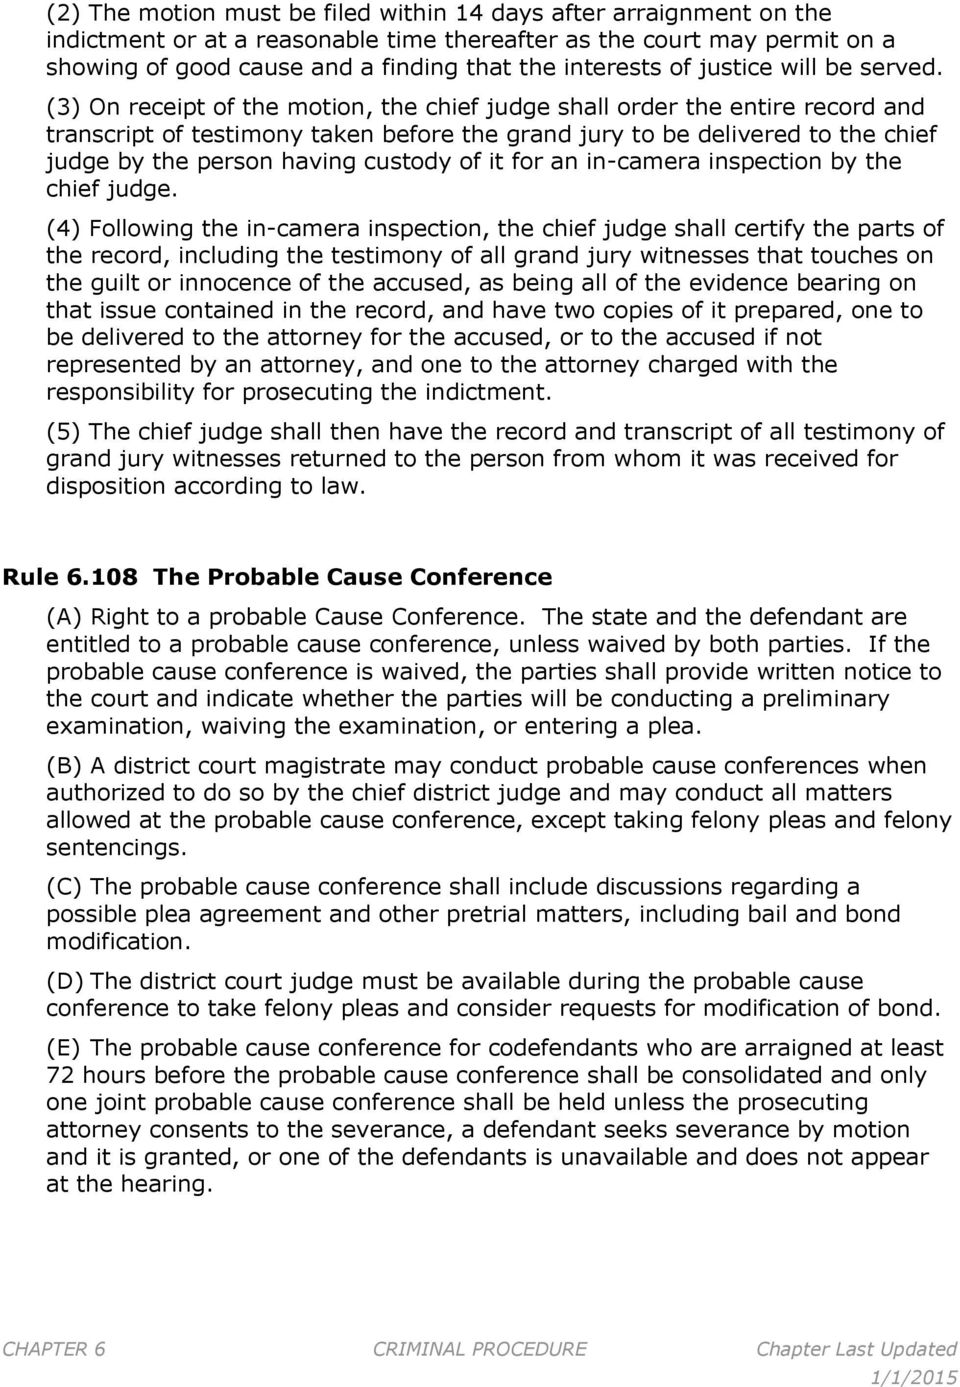 (3) On receipt of the motion, the chief judge shall order the entire